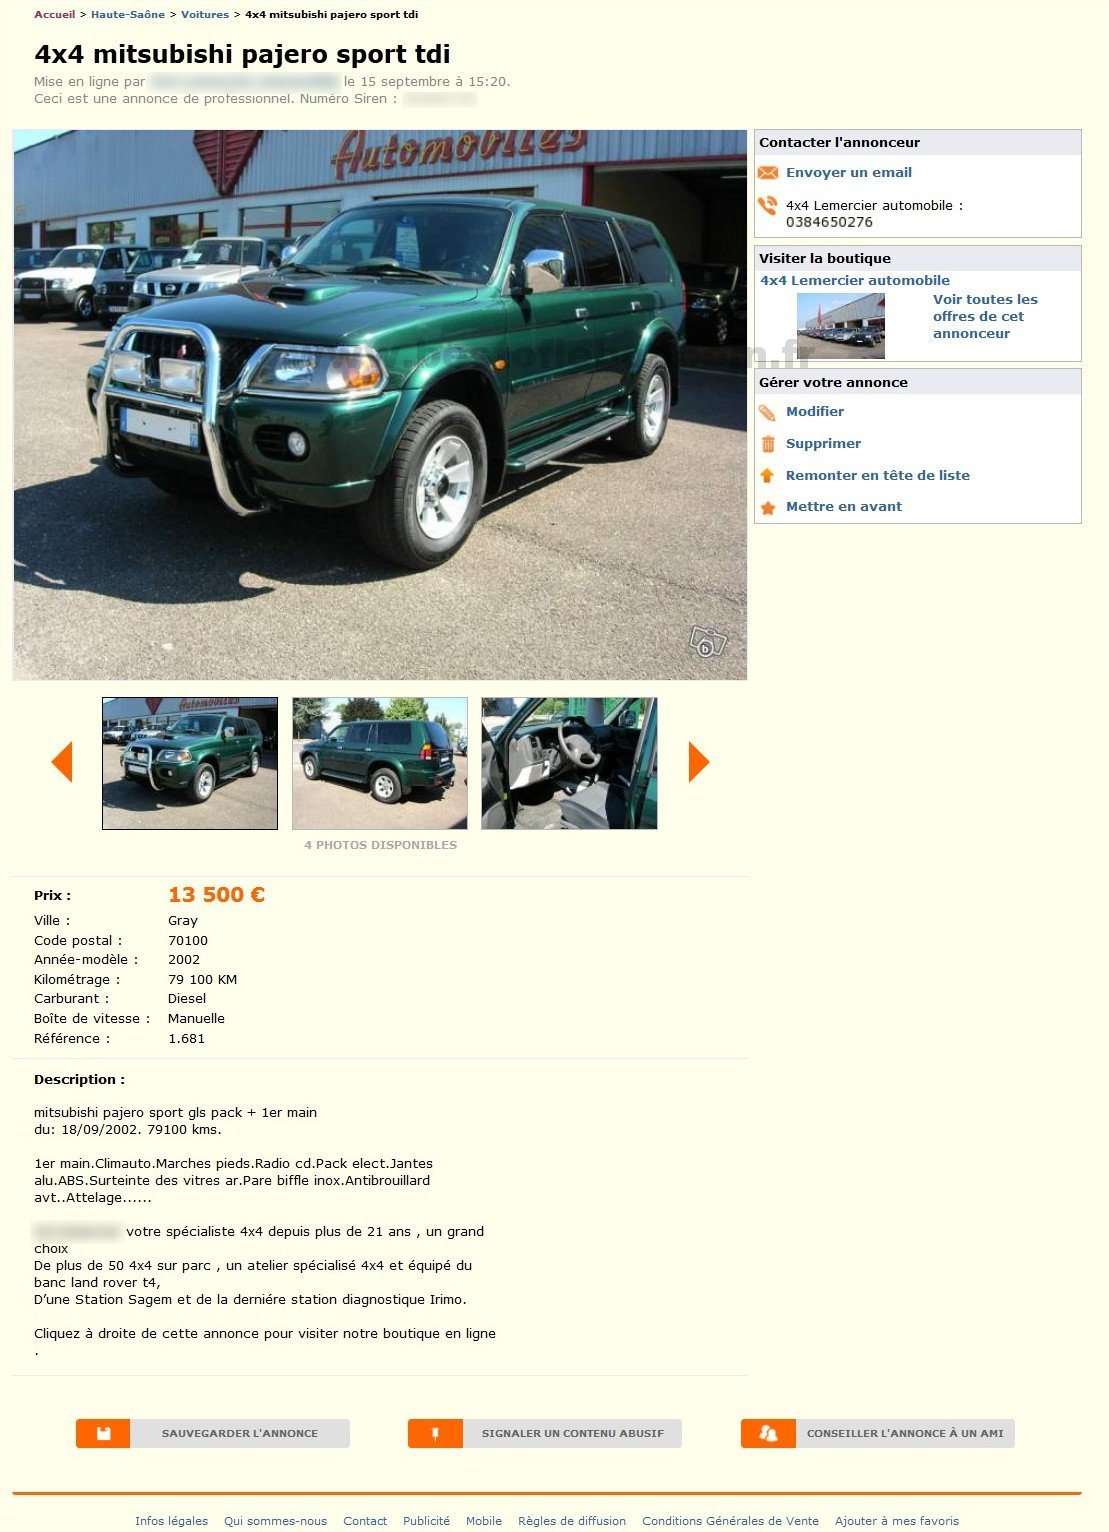 4x4 mitsubishi pajero voitures franche comt best of for Garage 4x4 franche comte